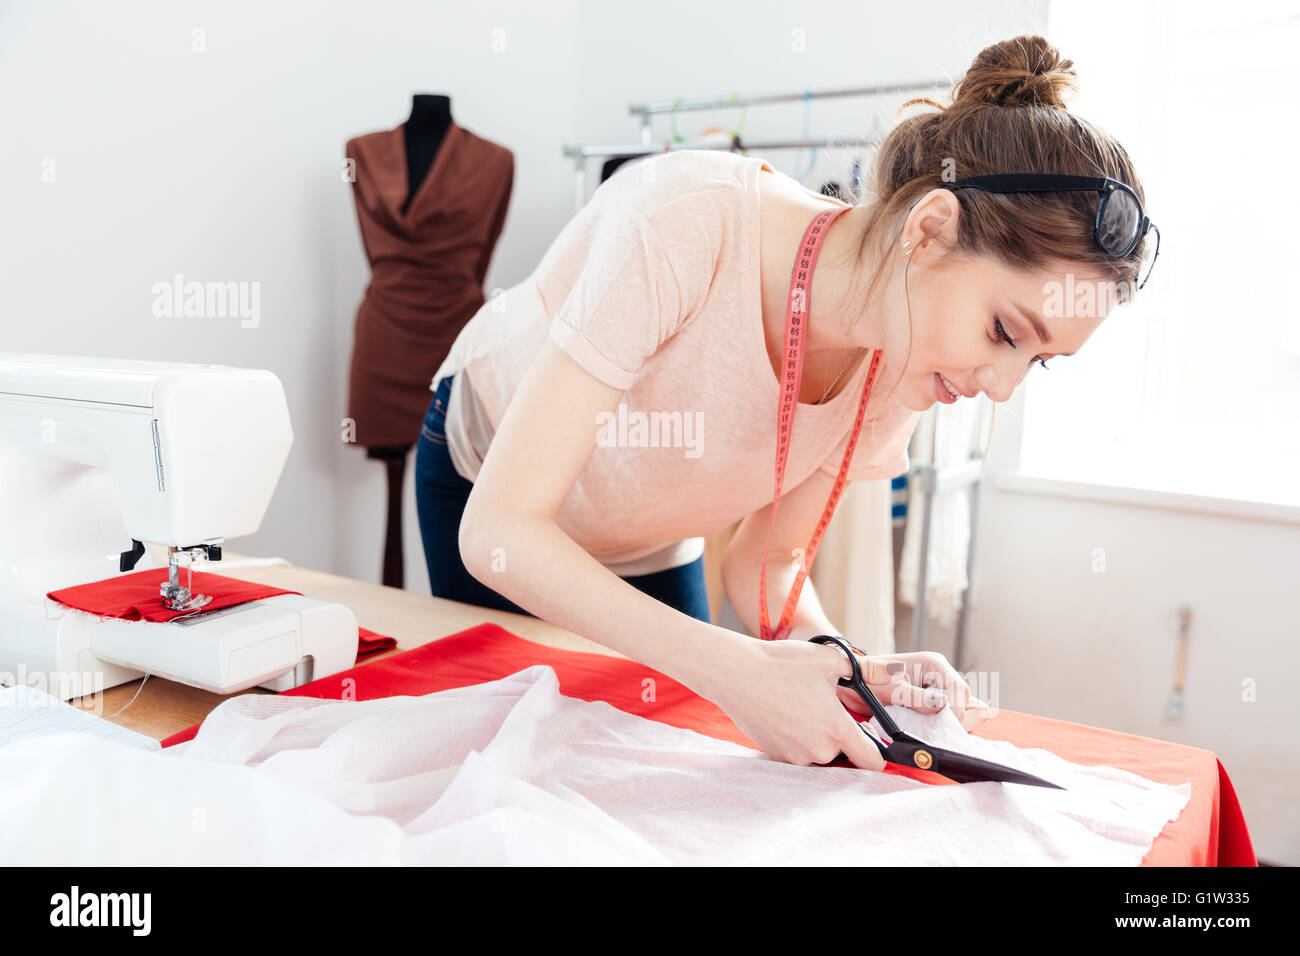 Beautiful focused young woman fashion designer cutting white fabric in studio - Stock Image